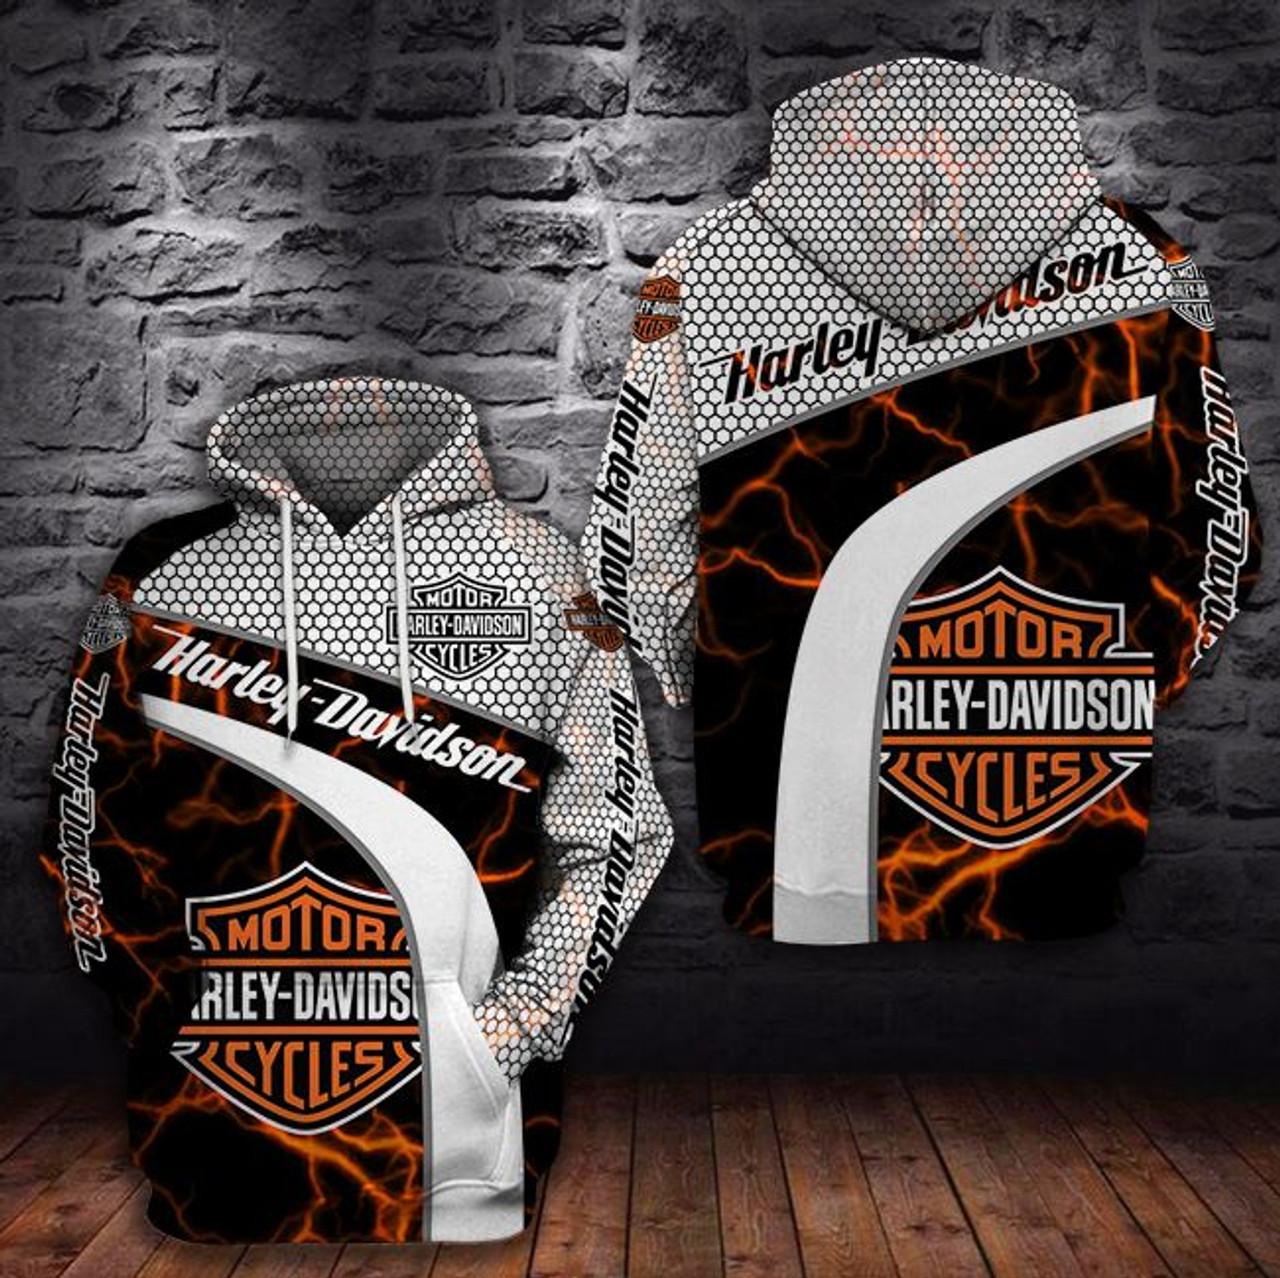 **(HARLEY-DAVIDSON-MOTORCYCLE-BIKER-PULLOVER-HOODIE/NEW-CUSTOMIZED-3D-GRAPHIC-PRINTED-OFFICIAL-HARLEY-DESIGN-LOGOS)**